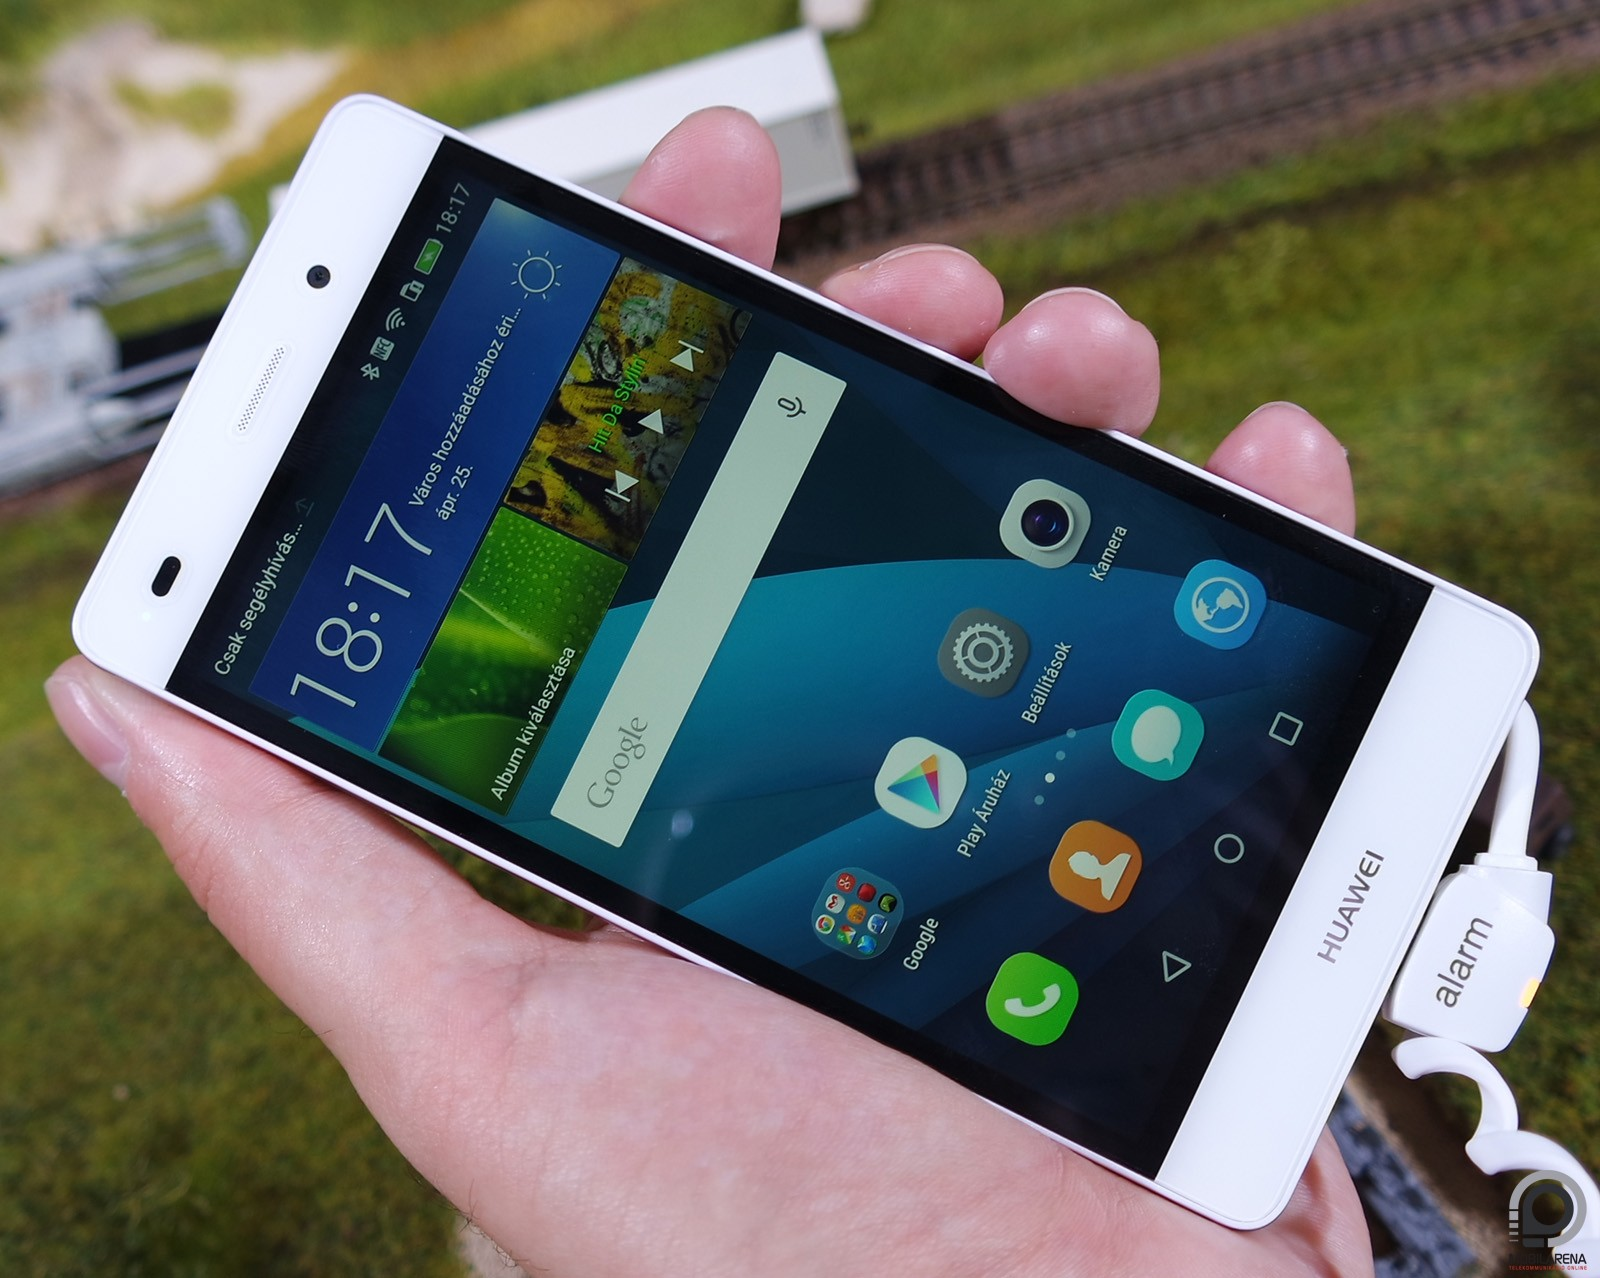 Image result for huawei p8 lite